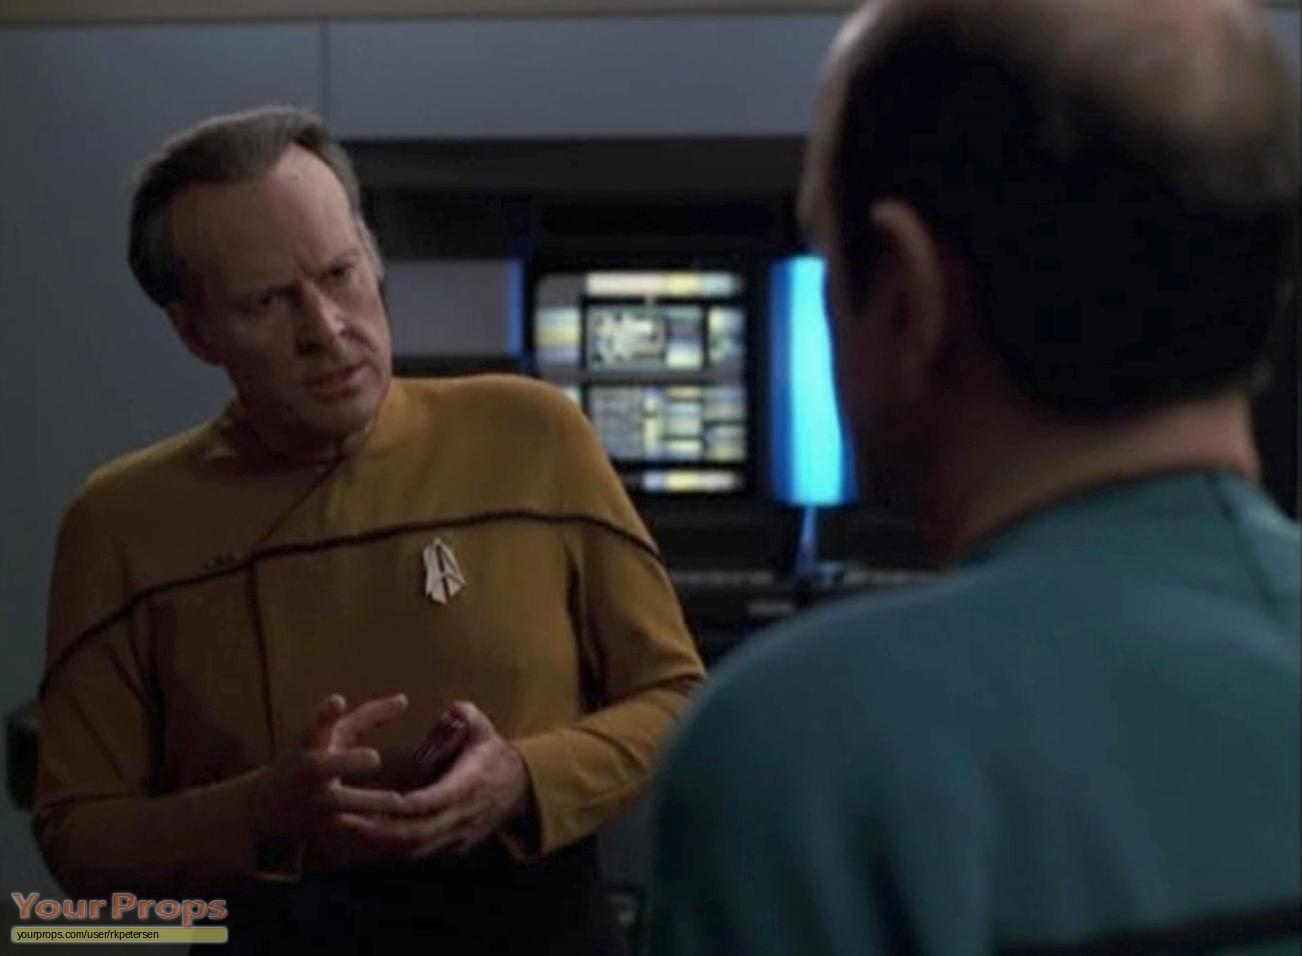 an introduction and an analysis of star trek the original series It later acquired the retronym of star trek: the original series (star trek: tos or simply tos) to distinguish the show within the media franchise that it began who are killed or injured soon after their introduction.